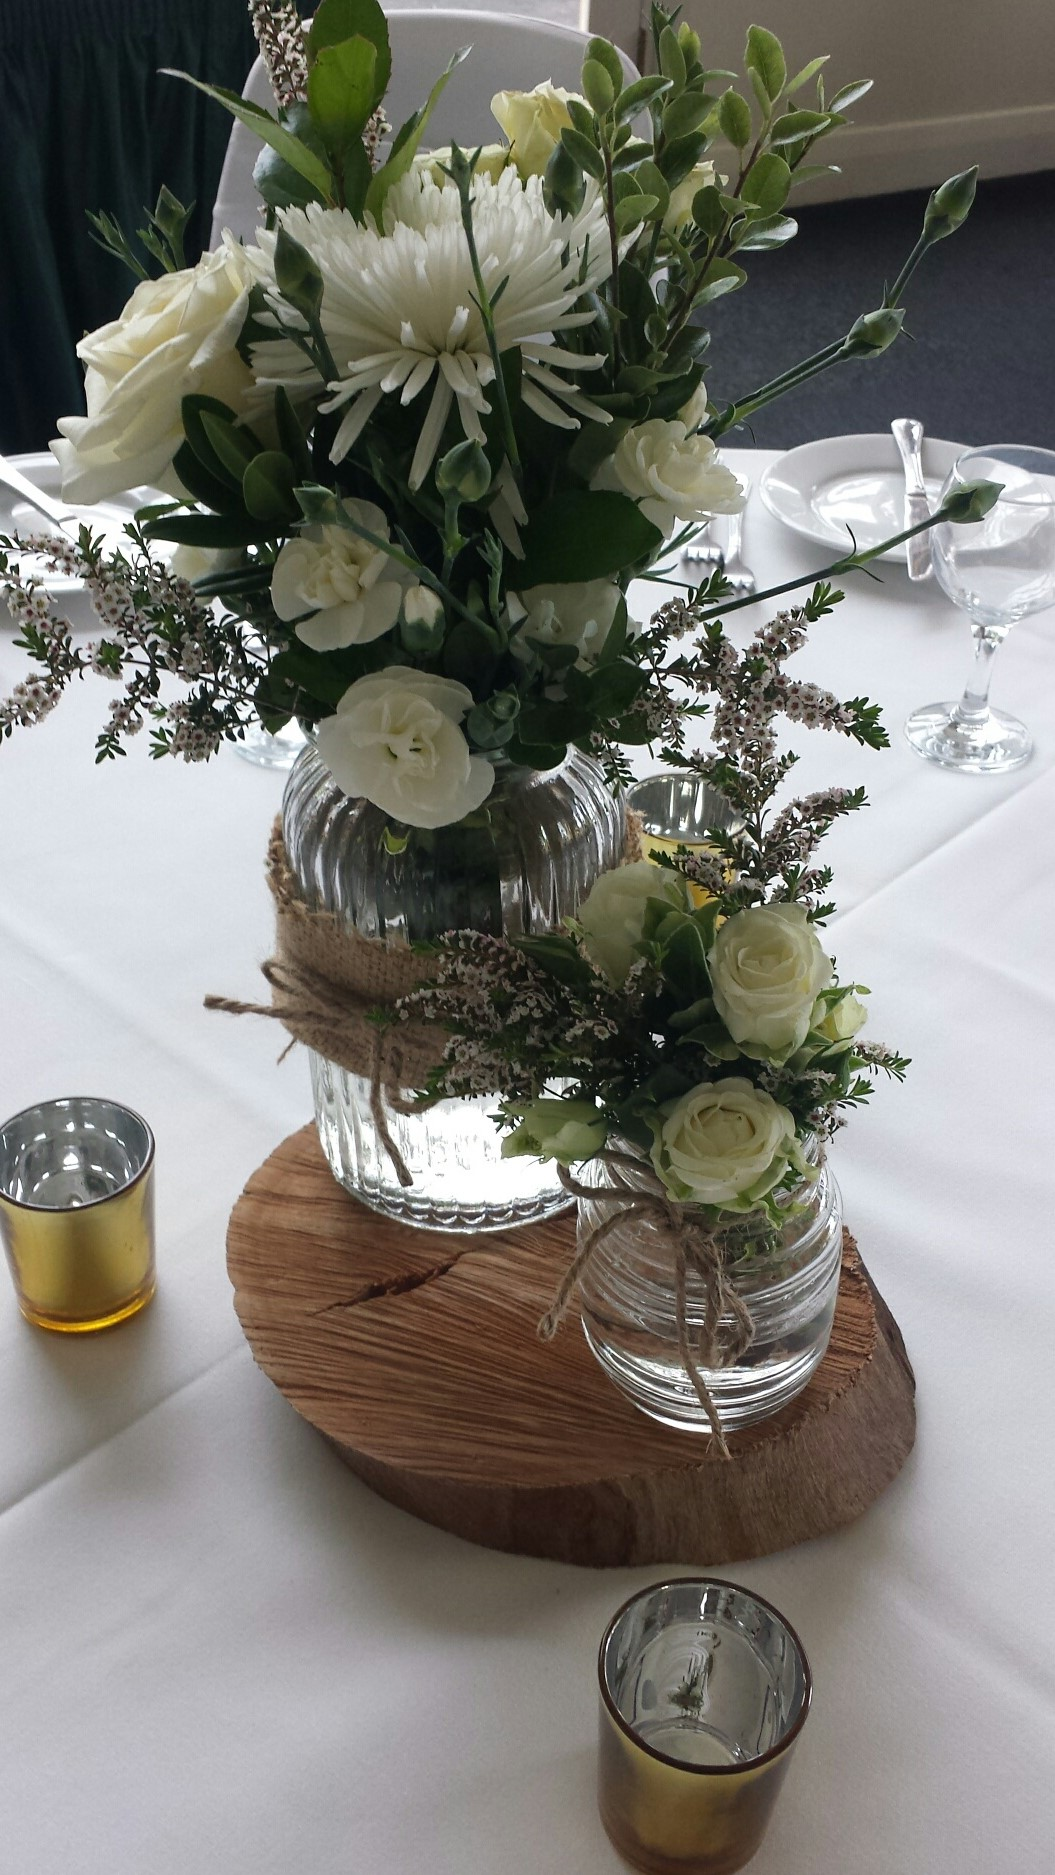 All white vintage vases on wood round